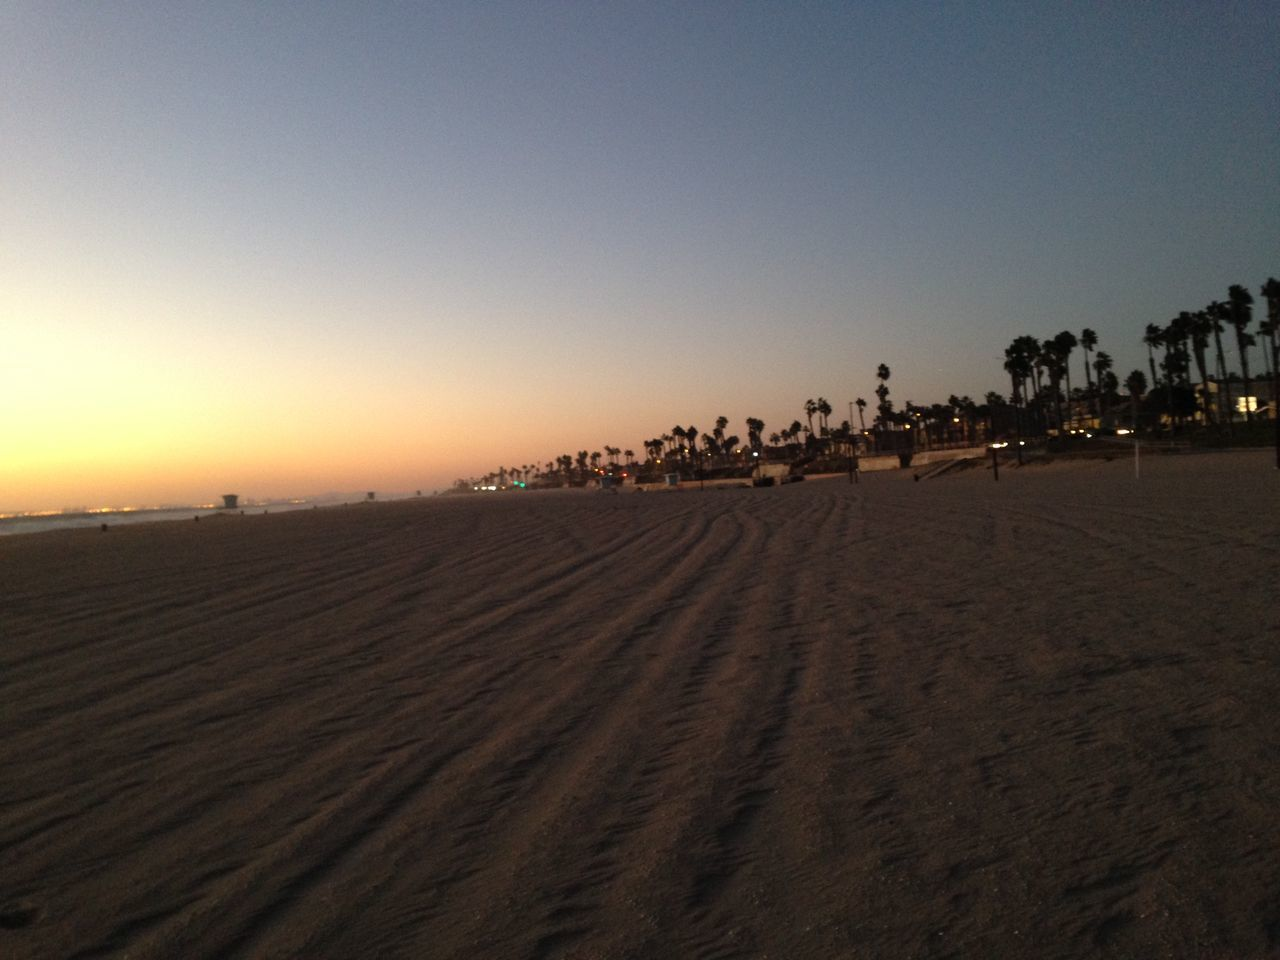 sand, beach, outdoors, sunset, nature, sand dune, clear sky, desert, landscape, large group of people, beauty in nature, scenics, day, sky, people